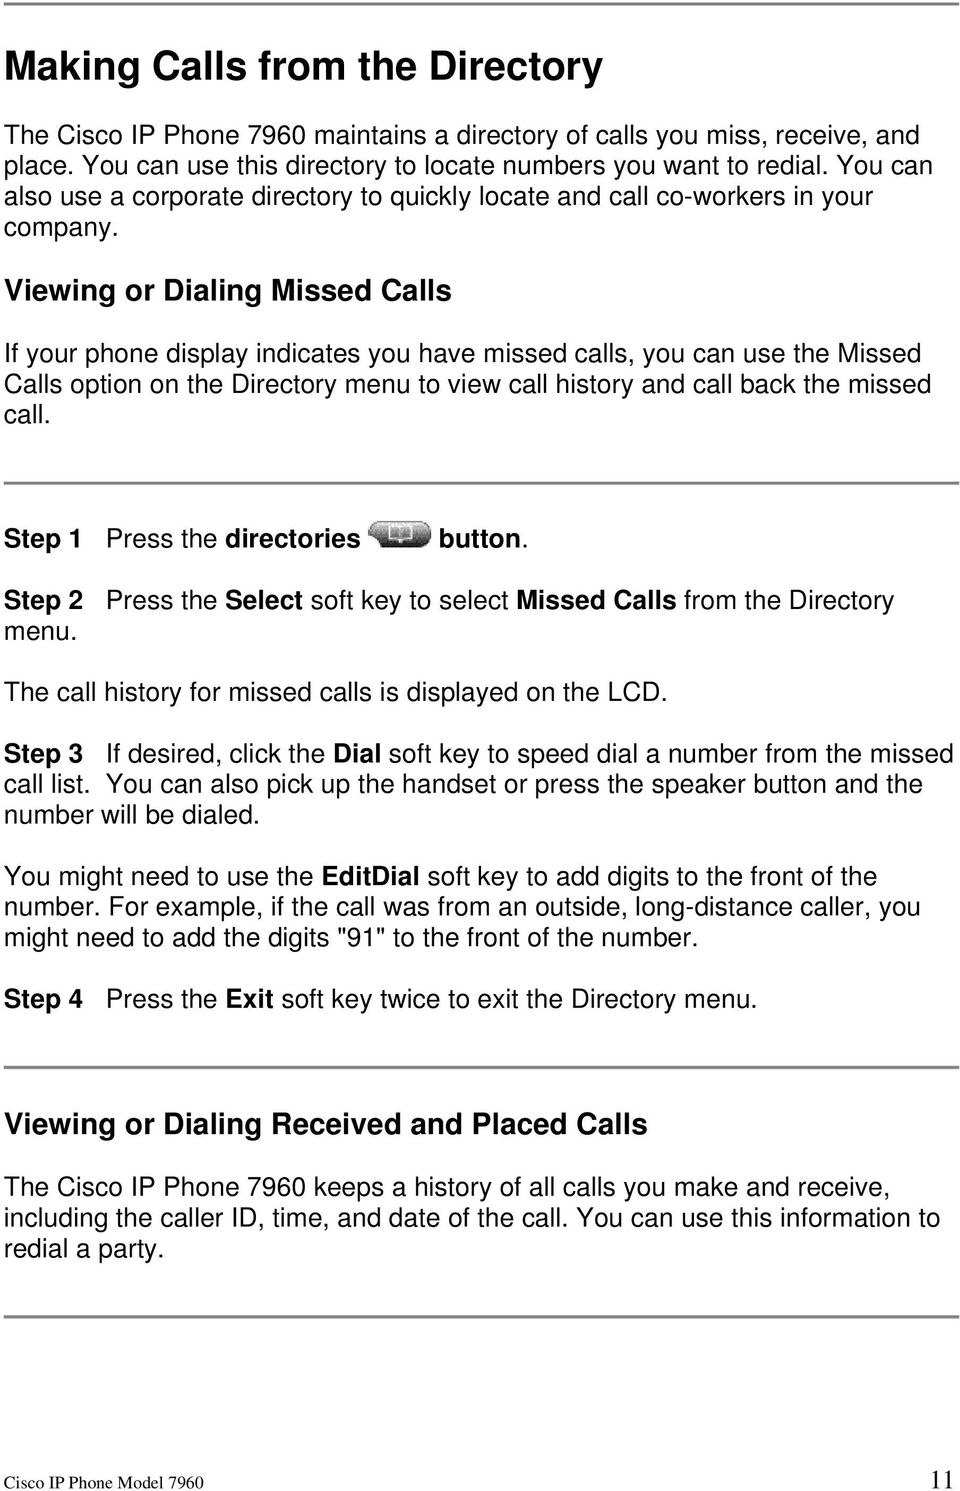 Viewing or Dialing Missed Calls If your phone display indicates you have missed calls, you can use the Missed Calls option on the Directory menu to view call history and call back the missed call.